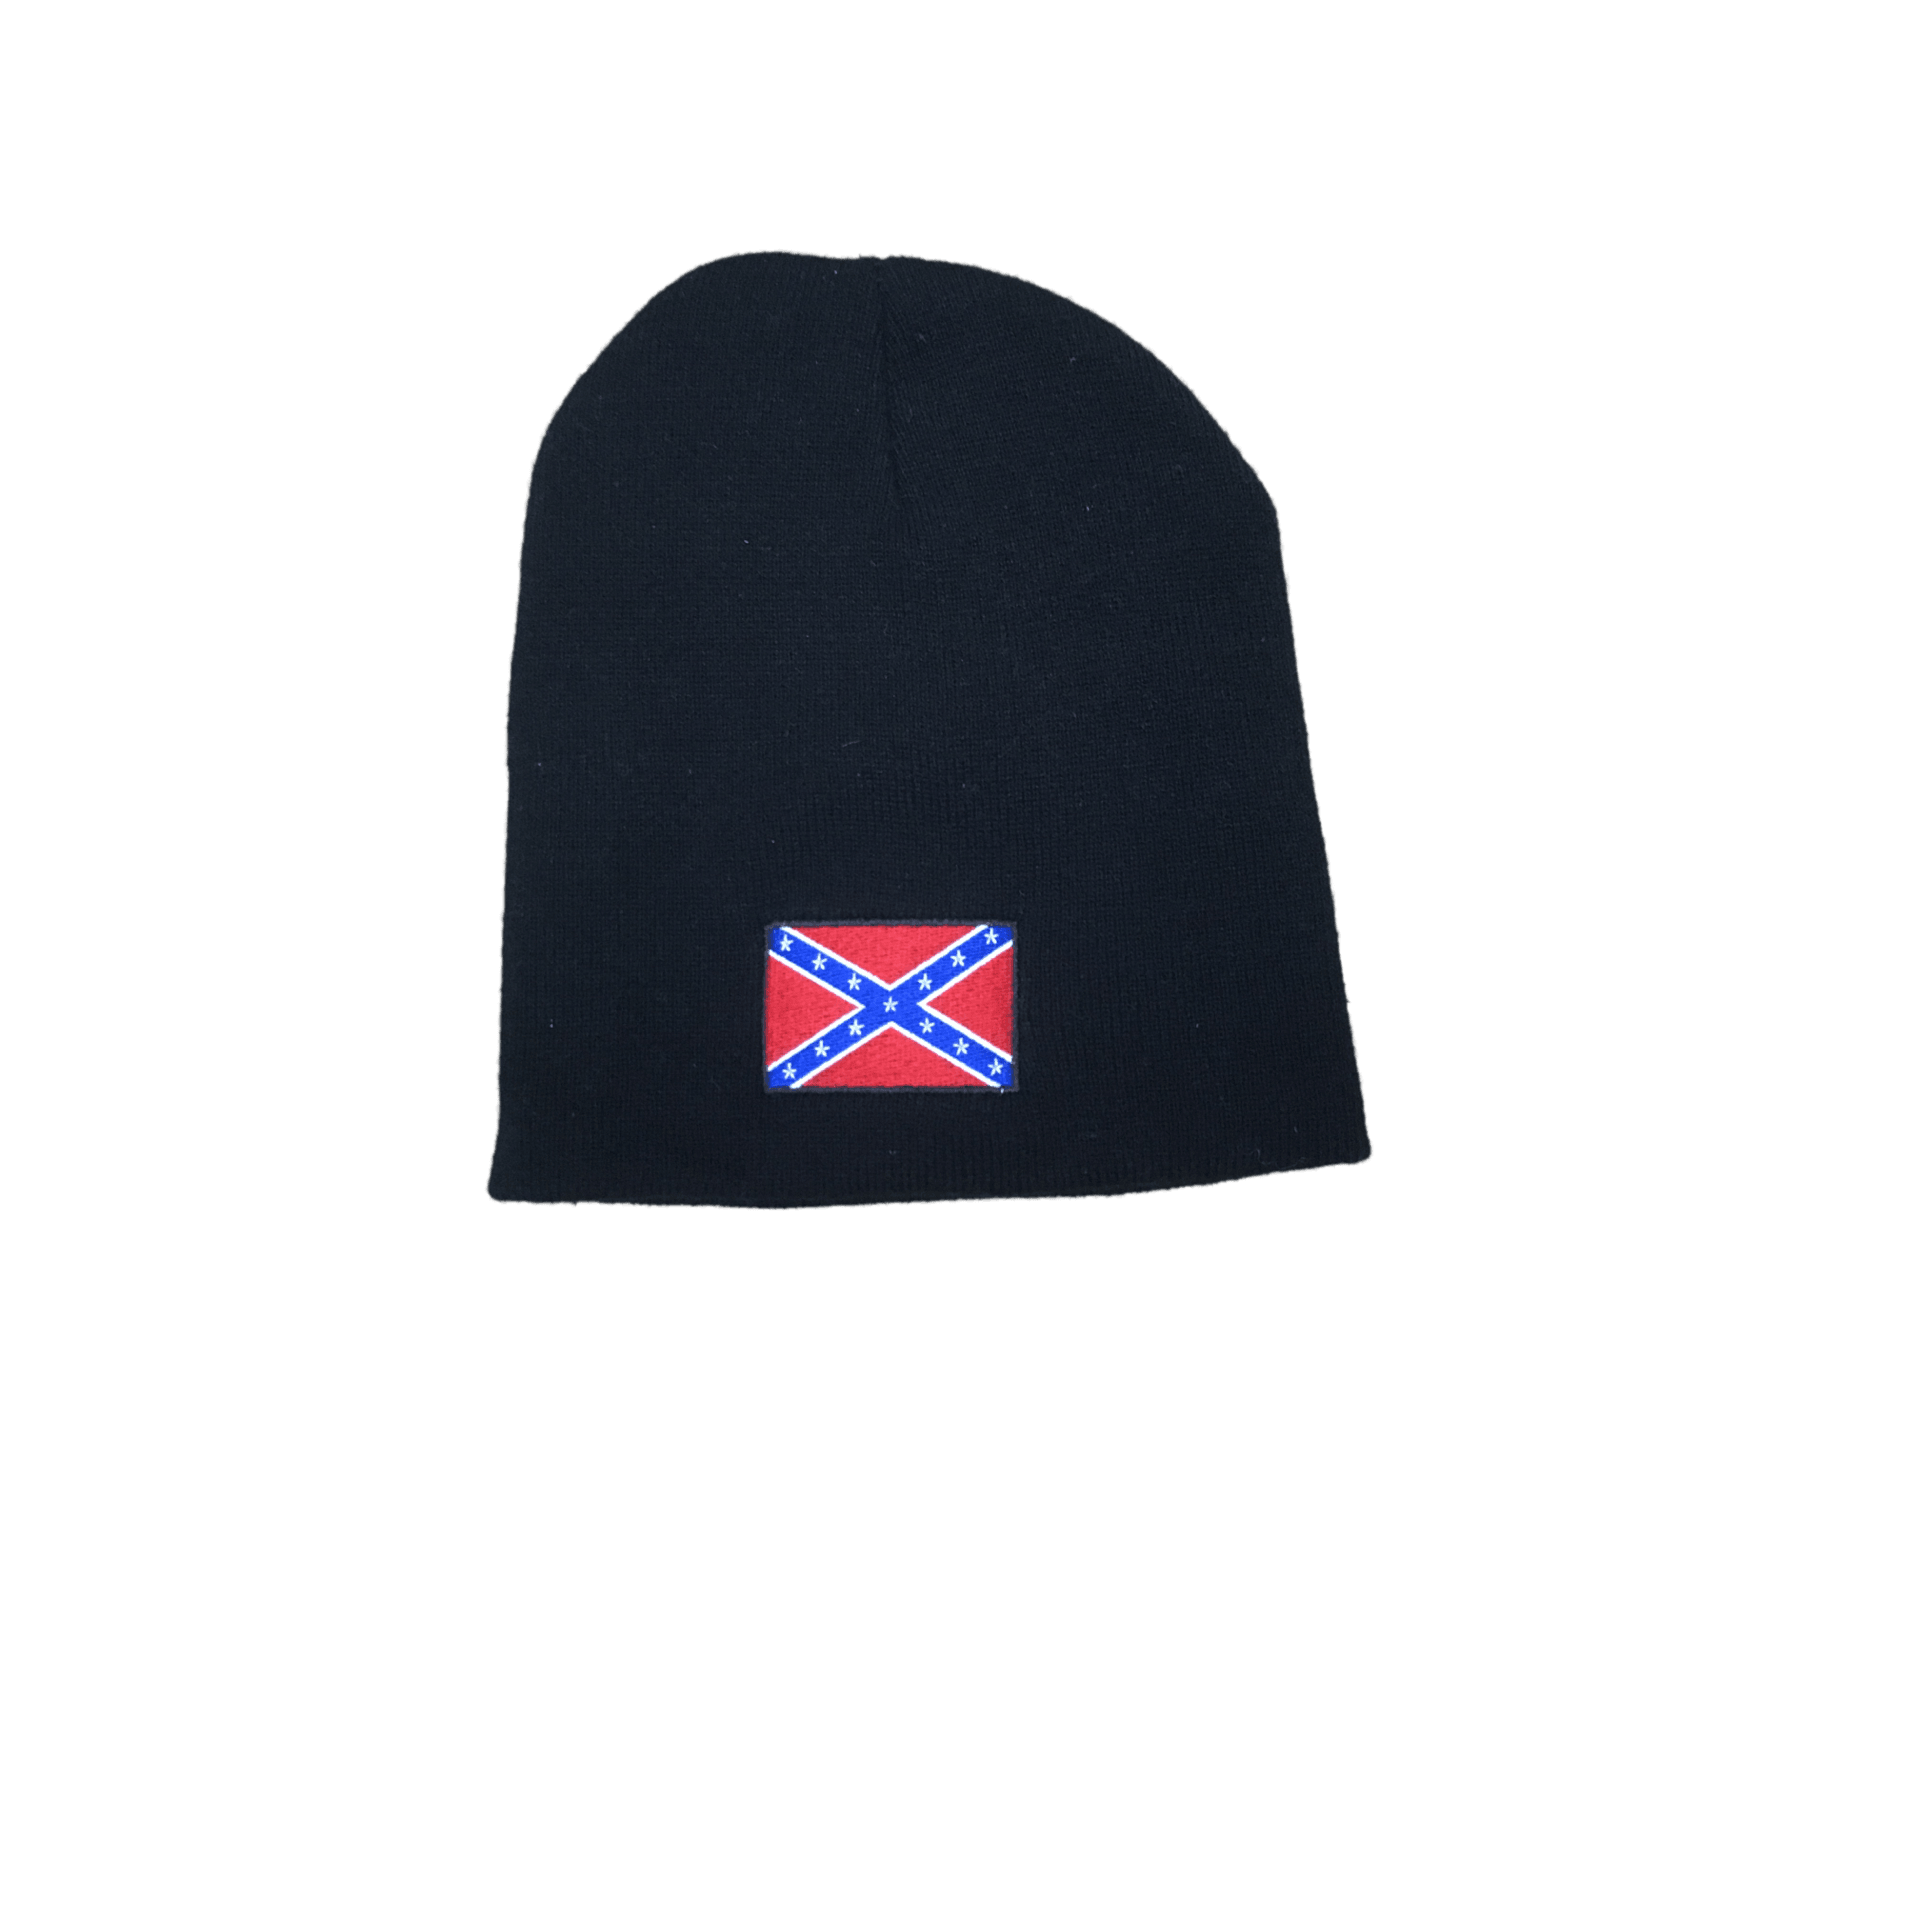 1256509ee49 ... Confederate Flag Beanie. Product image 1